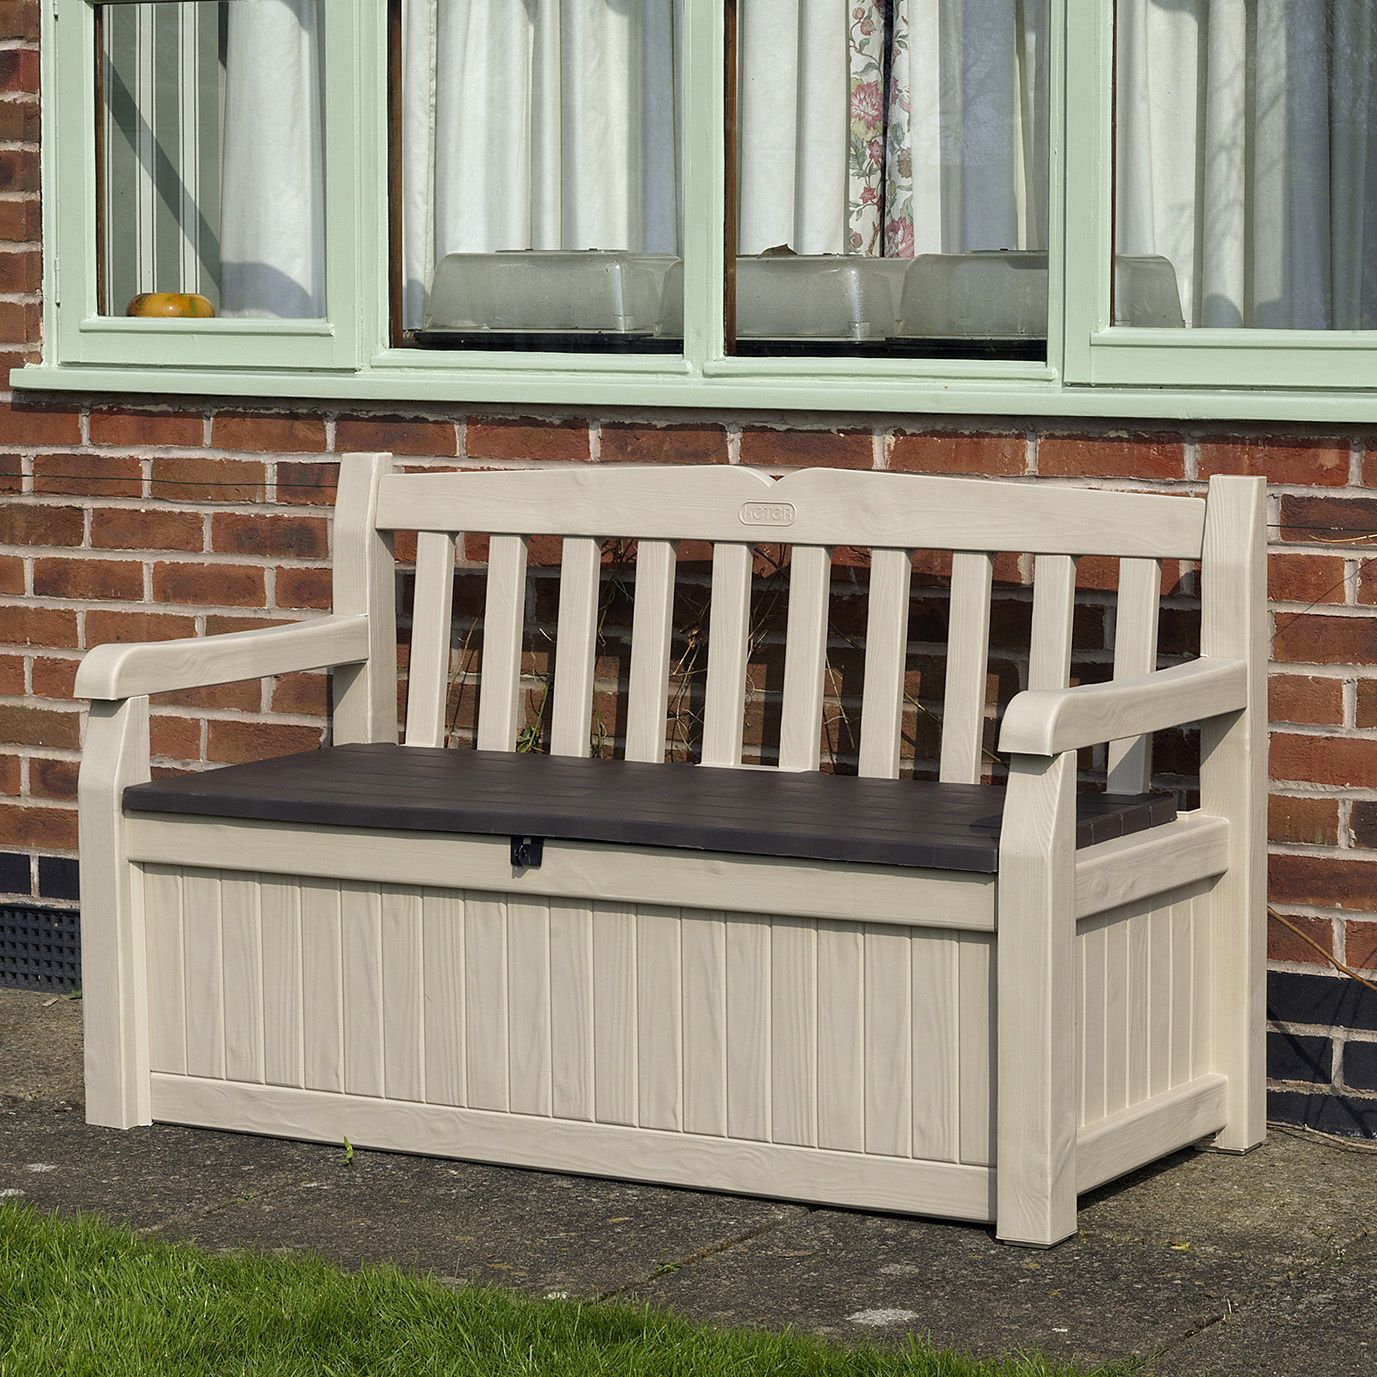 Wood Effect Plastic Garden Bench Storage Box Departments Diy At B Q